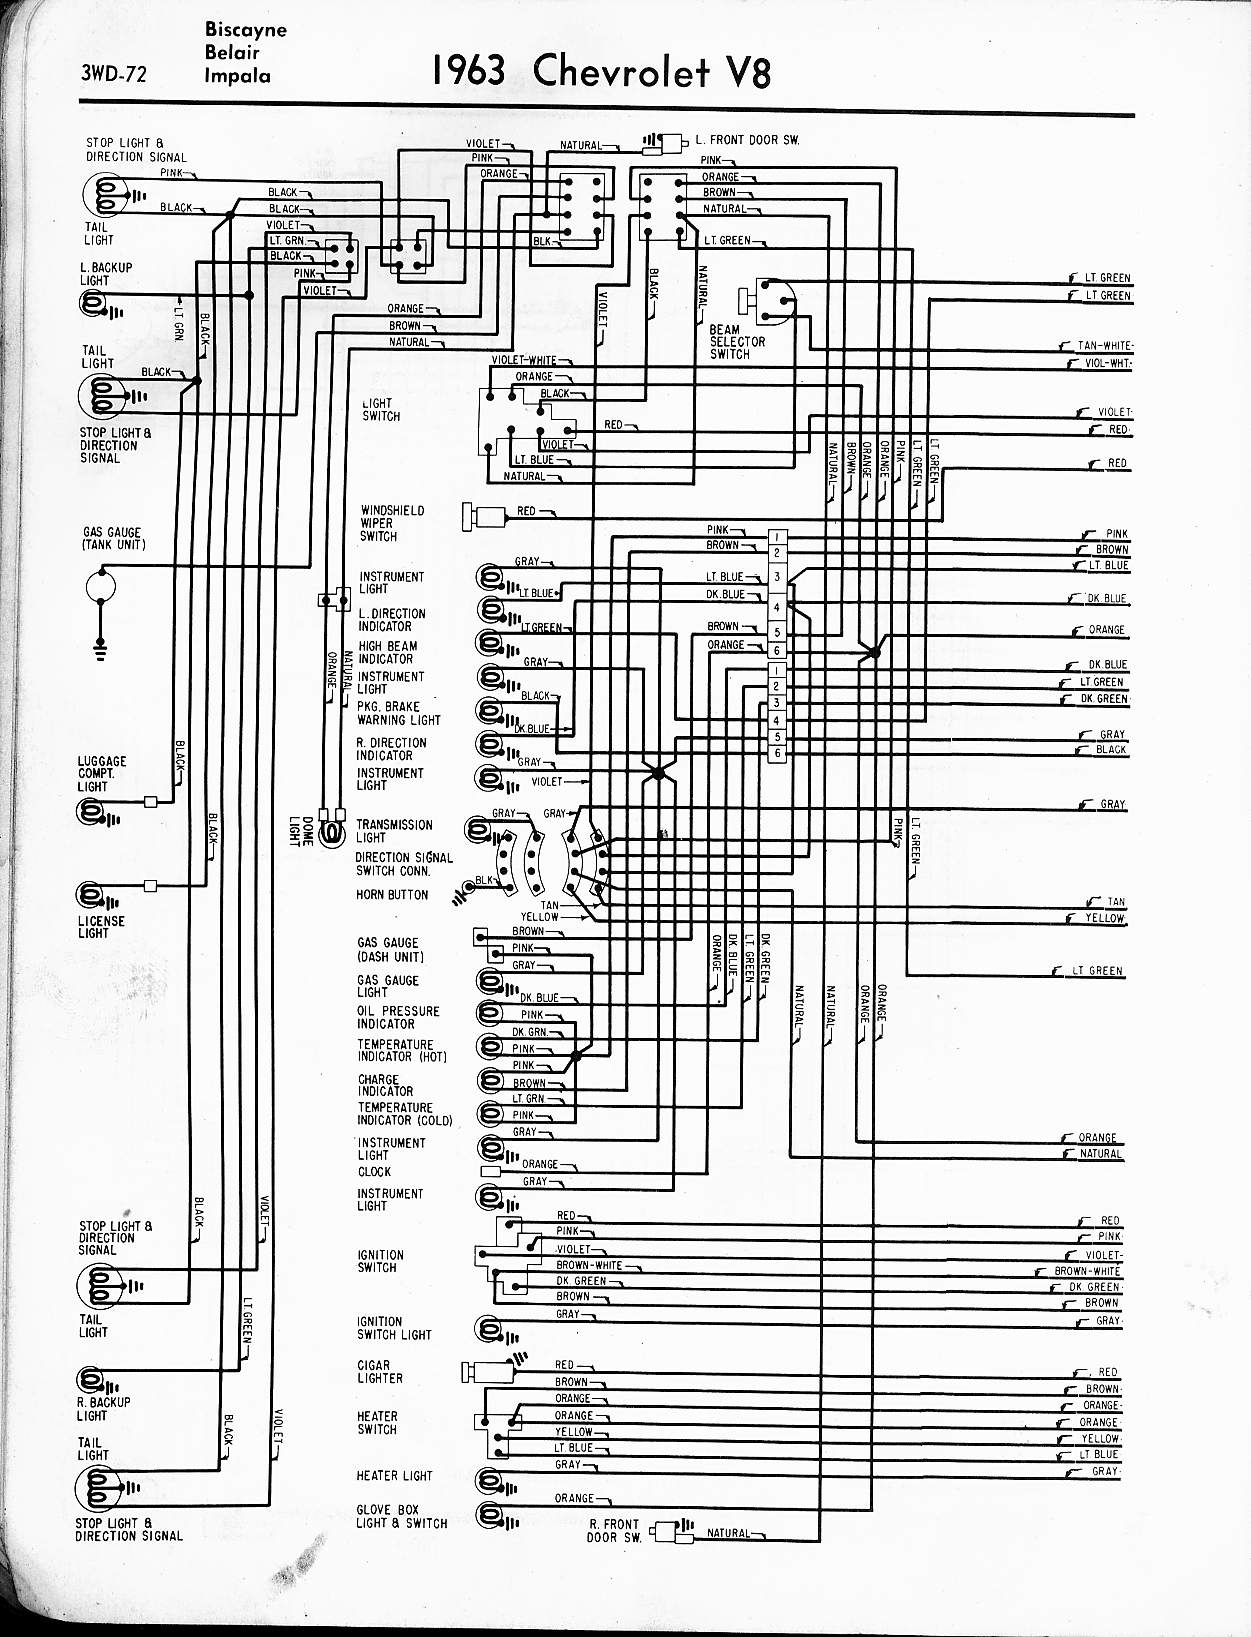 69 nova wiring diagram 69 image wiring diagram 72 nova turn signal wiring diagram 72 auto wiring diagram schematic on 69 nova wiring diagram